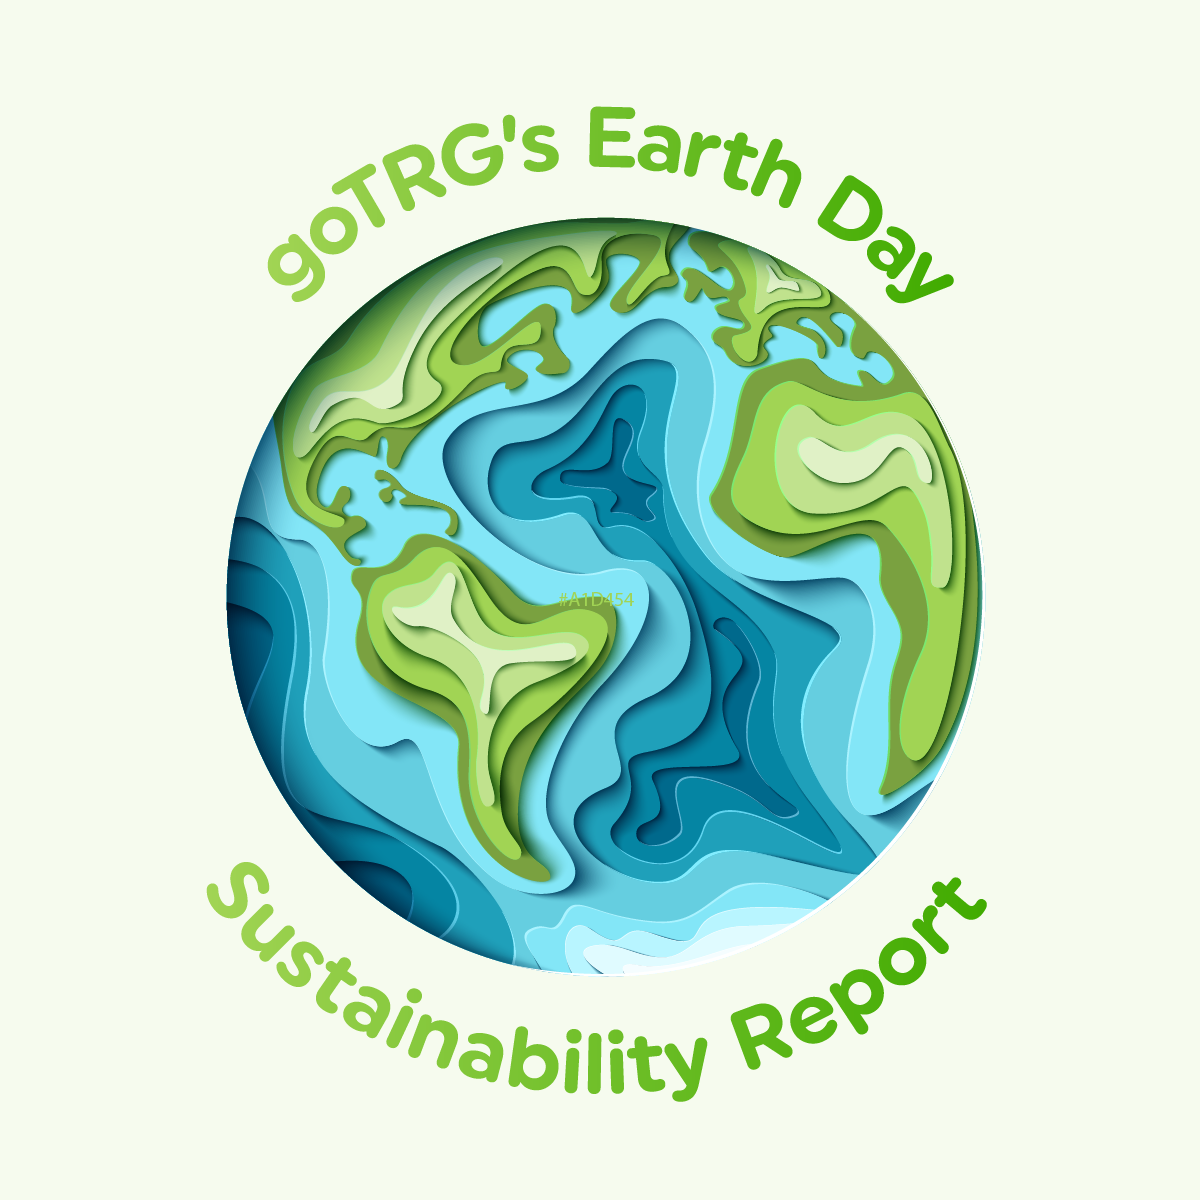 goTRG's Earth Day Sustainability Report